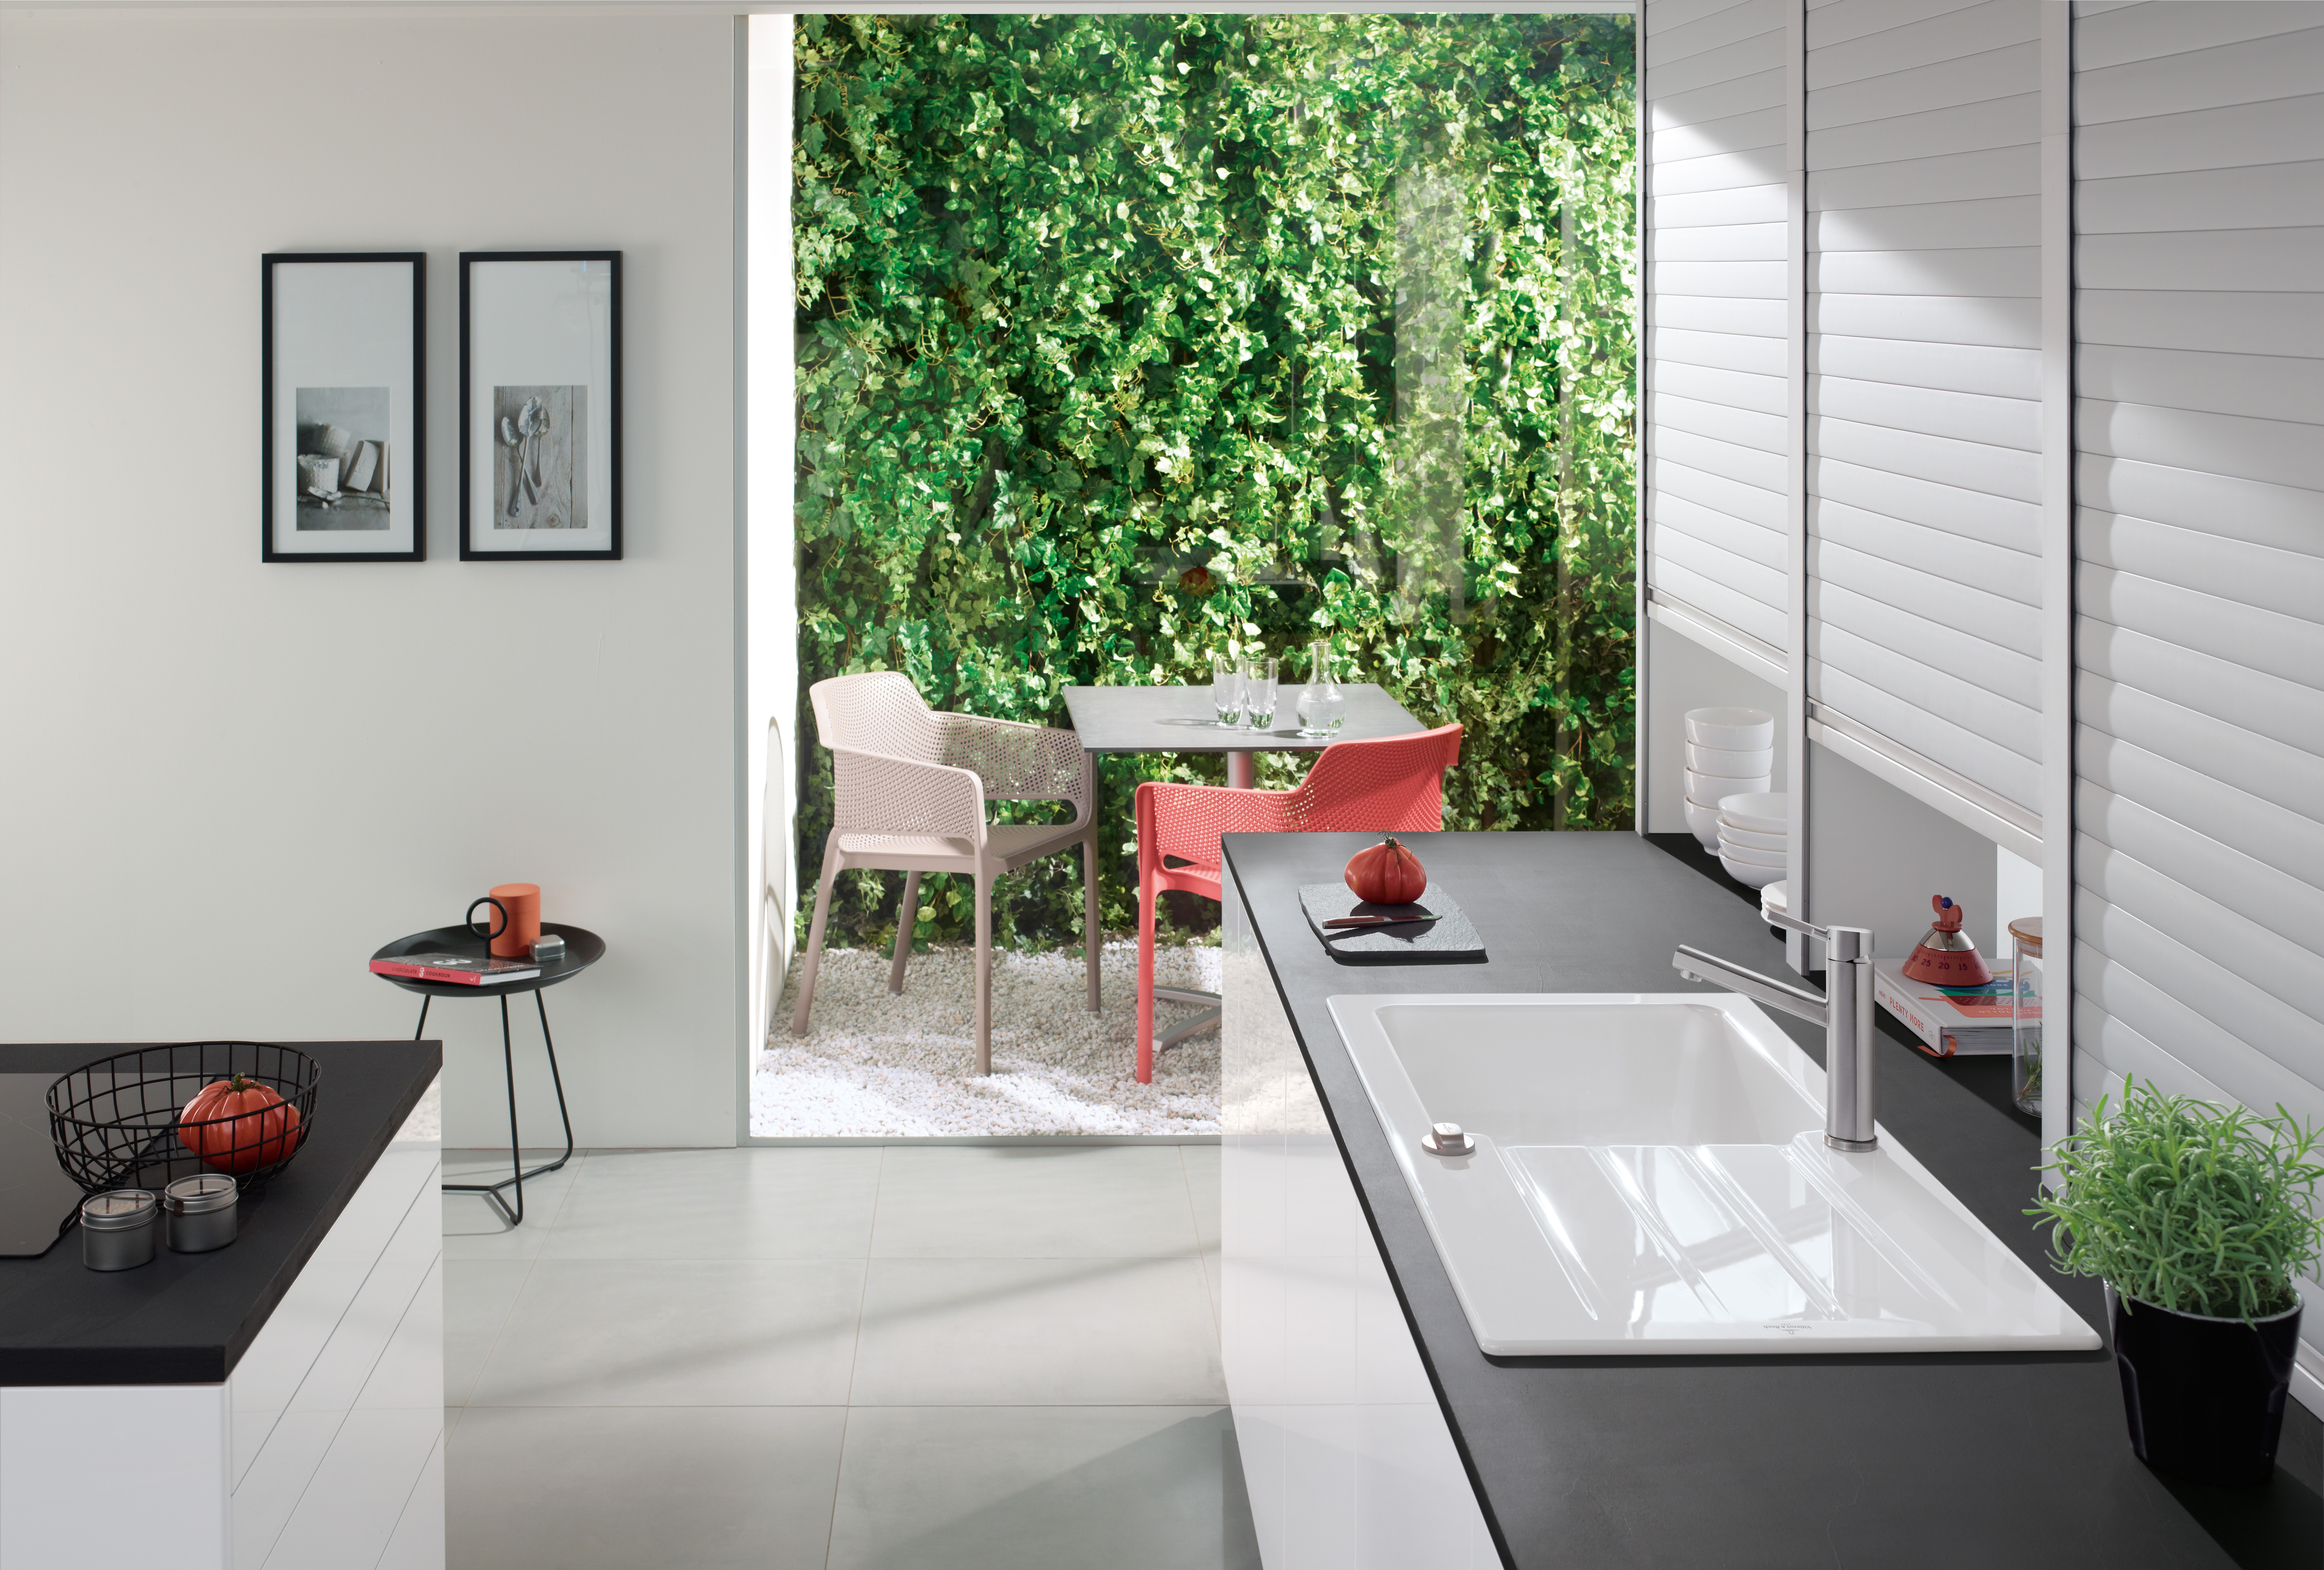 Architectura Built-in sinks